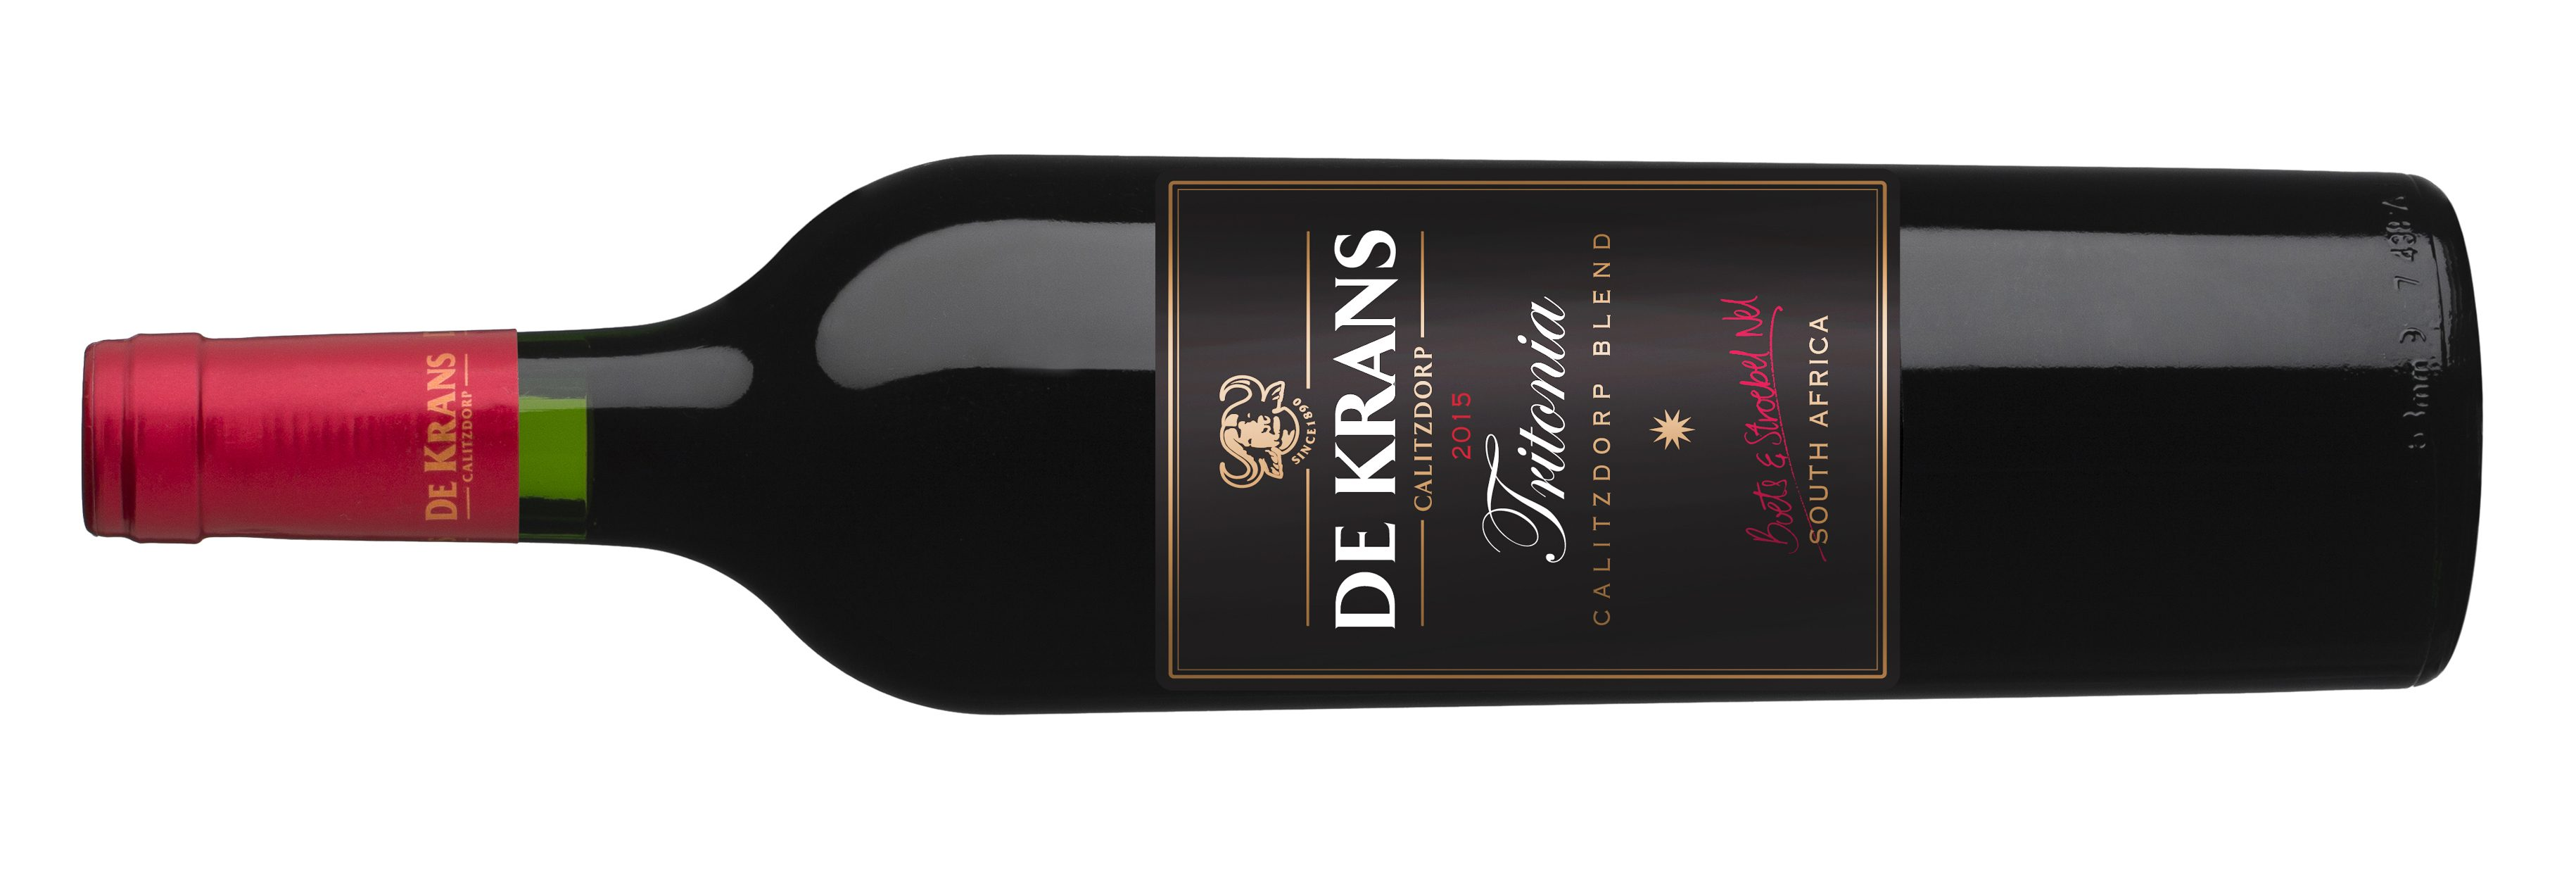 World Renowned Wine Authority Rates De Krans Amongst The Finest photo